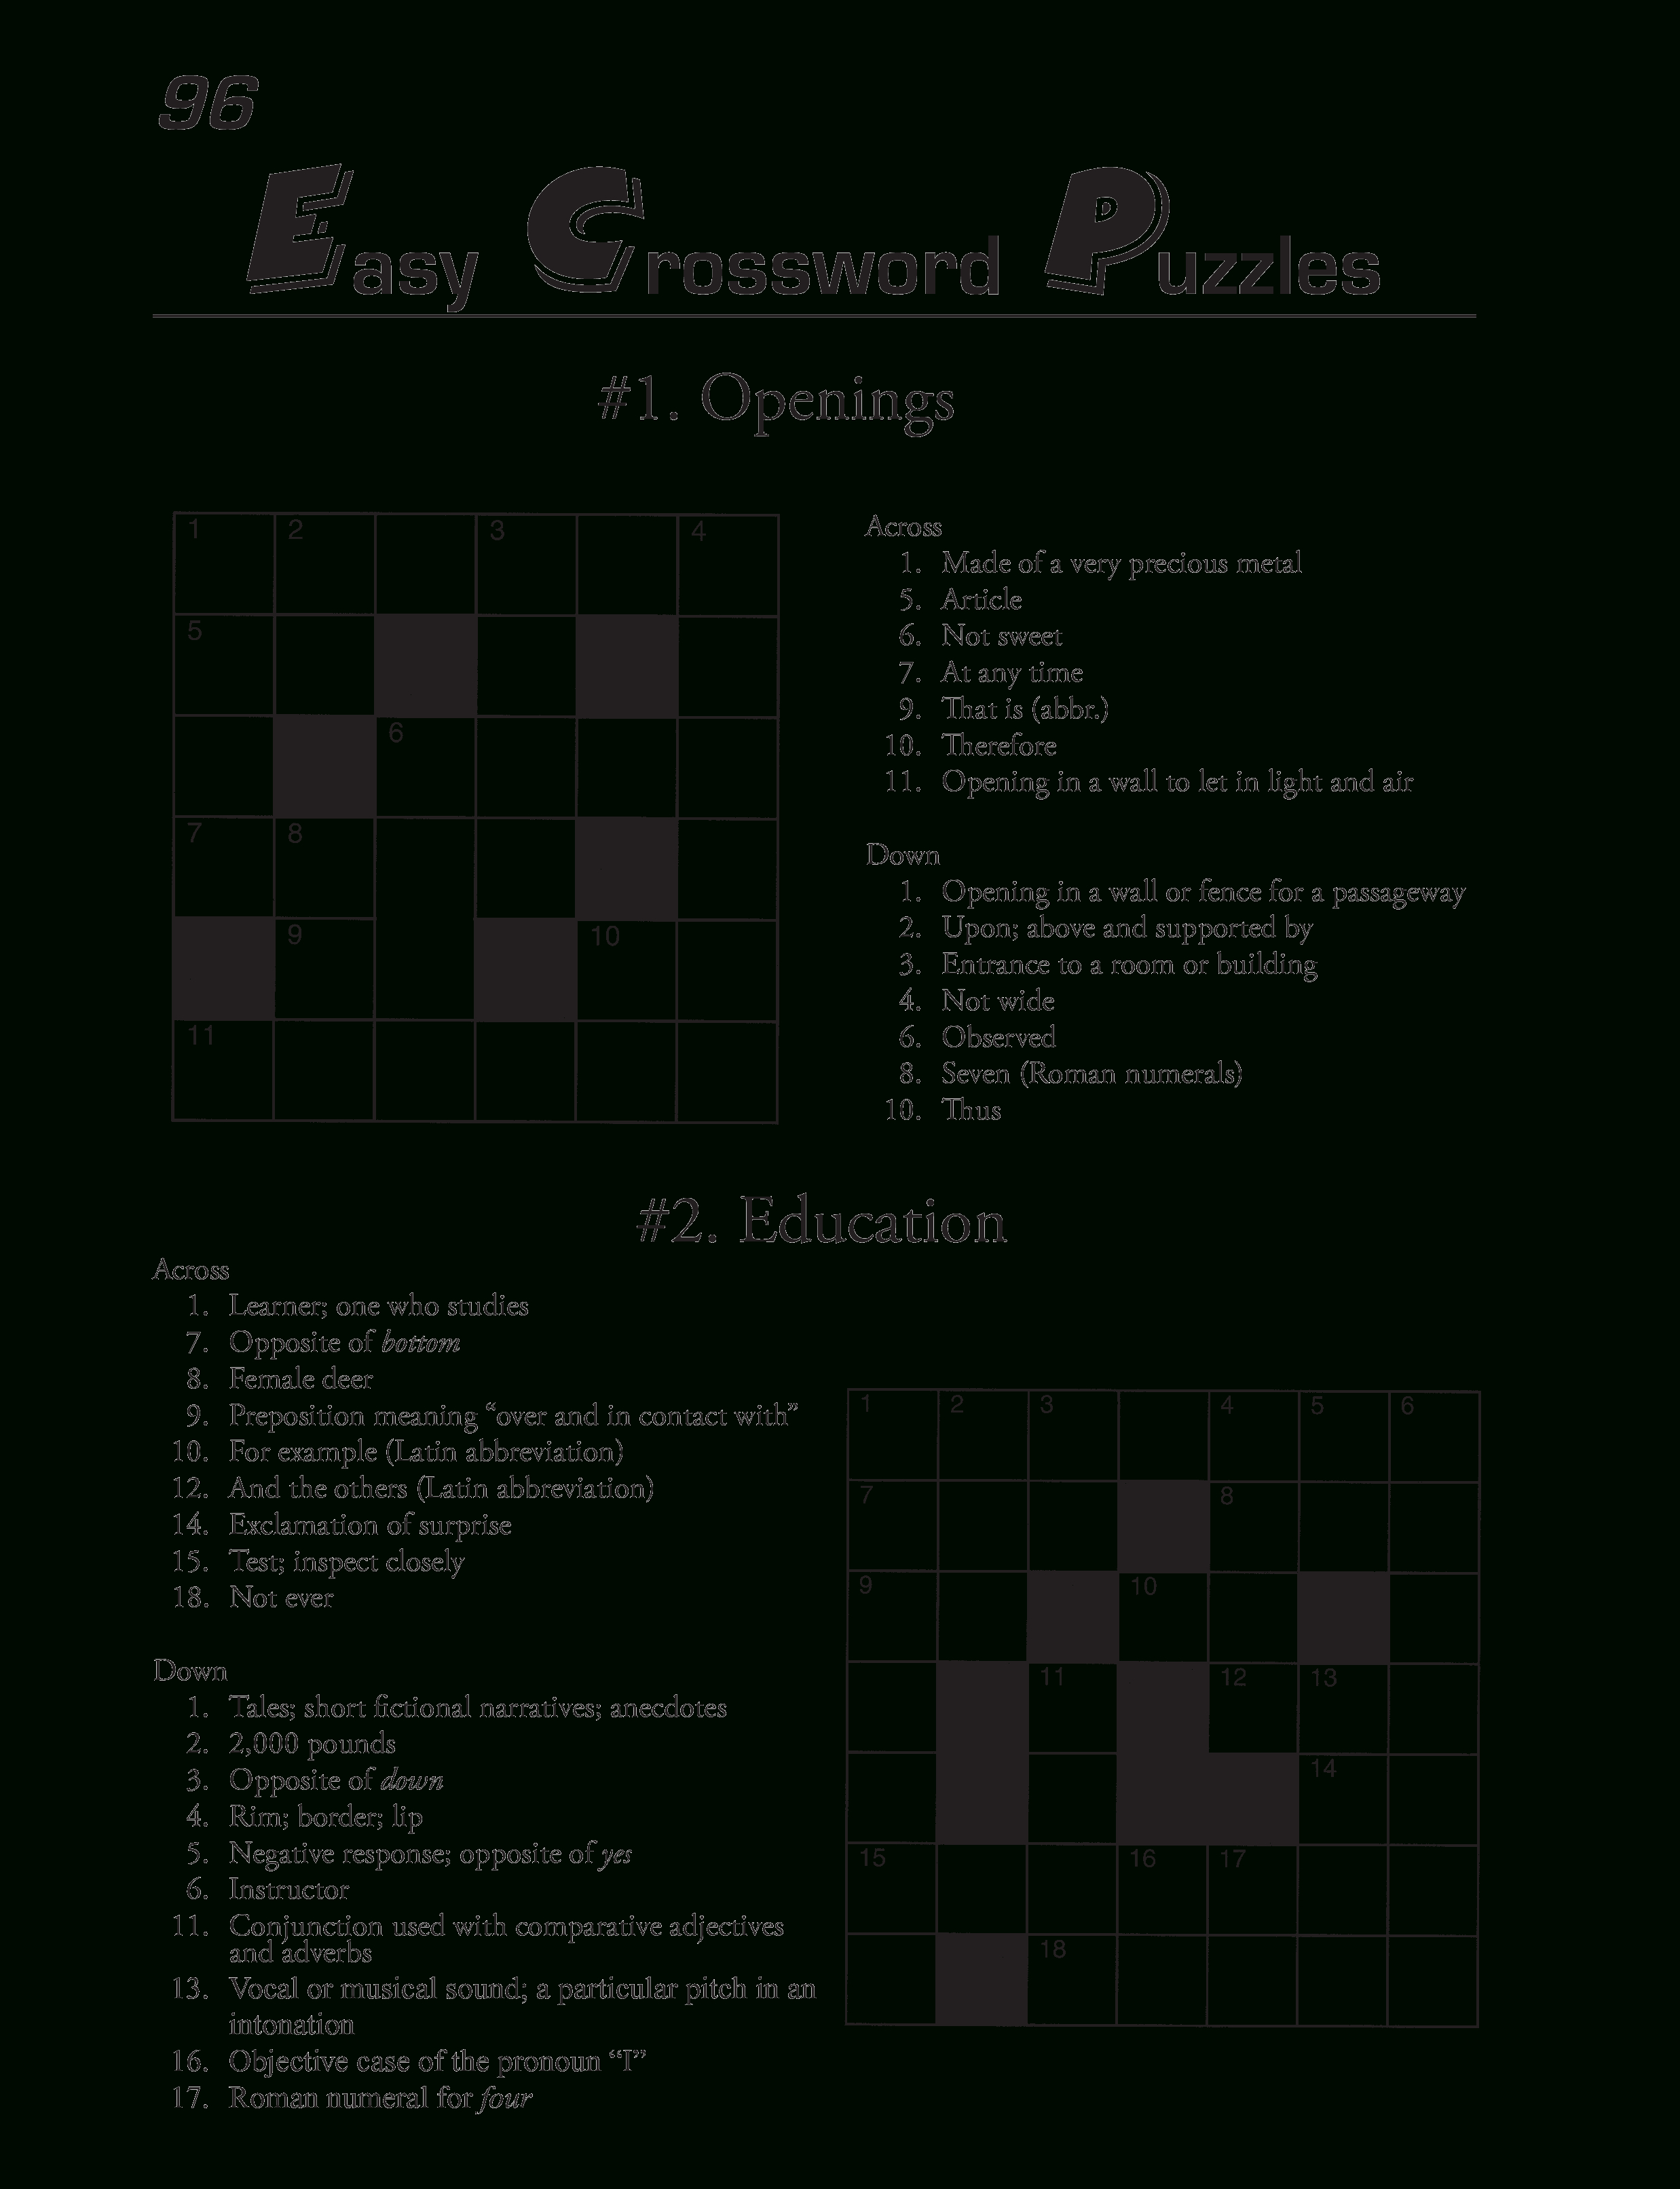 Free Printable Crossword Puzzles Template | Templates At - Free Printable Crossword Puzzles